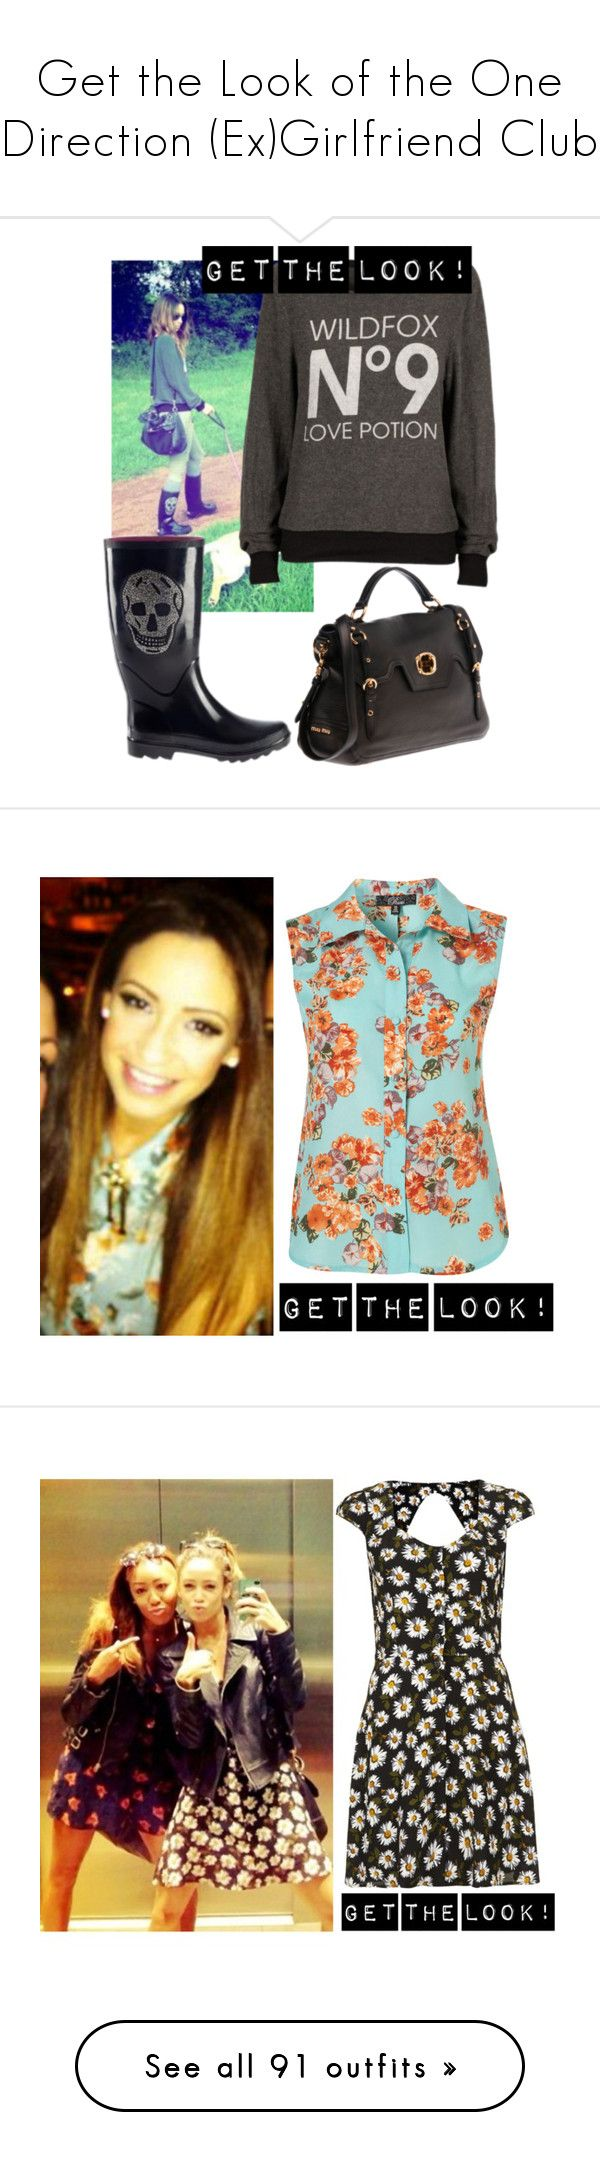 """""""Get the Look of the One Direction (Ex)Girlfriend Club"""" by lalican ❤ liked on Polyvore featuring Wildfox, Miu Miu, daniellepeazer, Calder, Topshop, Ray-Ban, Miss Selfridge, Jeffrey Campbell, Zara and Office"""